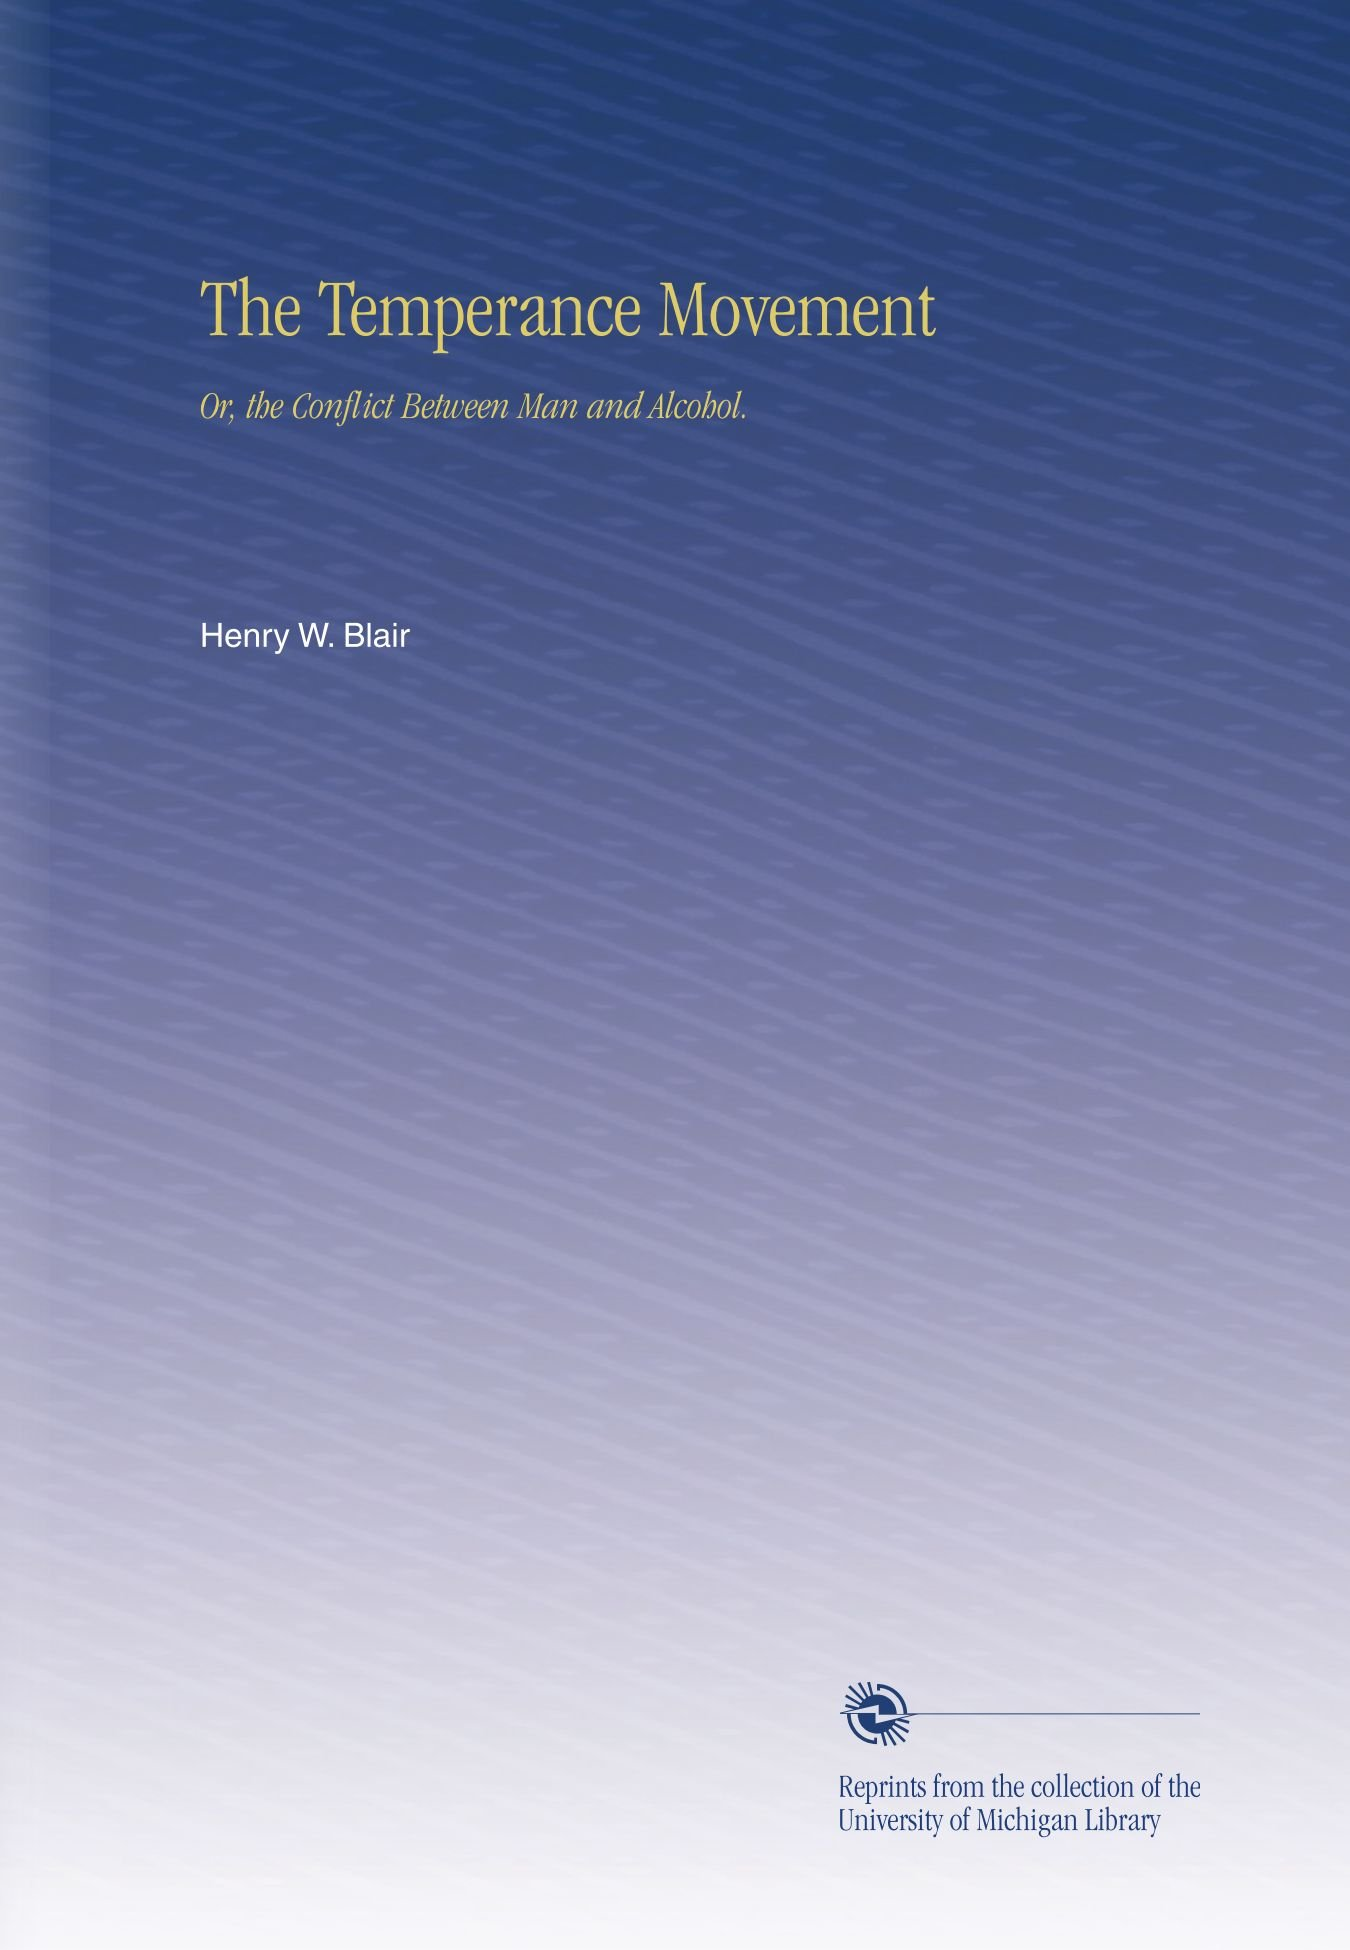 Download The Temperance Movement: Or, the Conflict Between Man and Alcohol. pdf